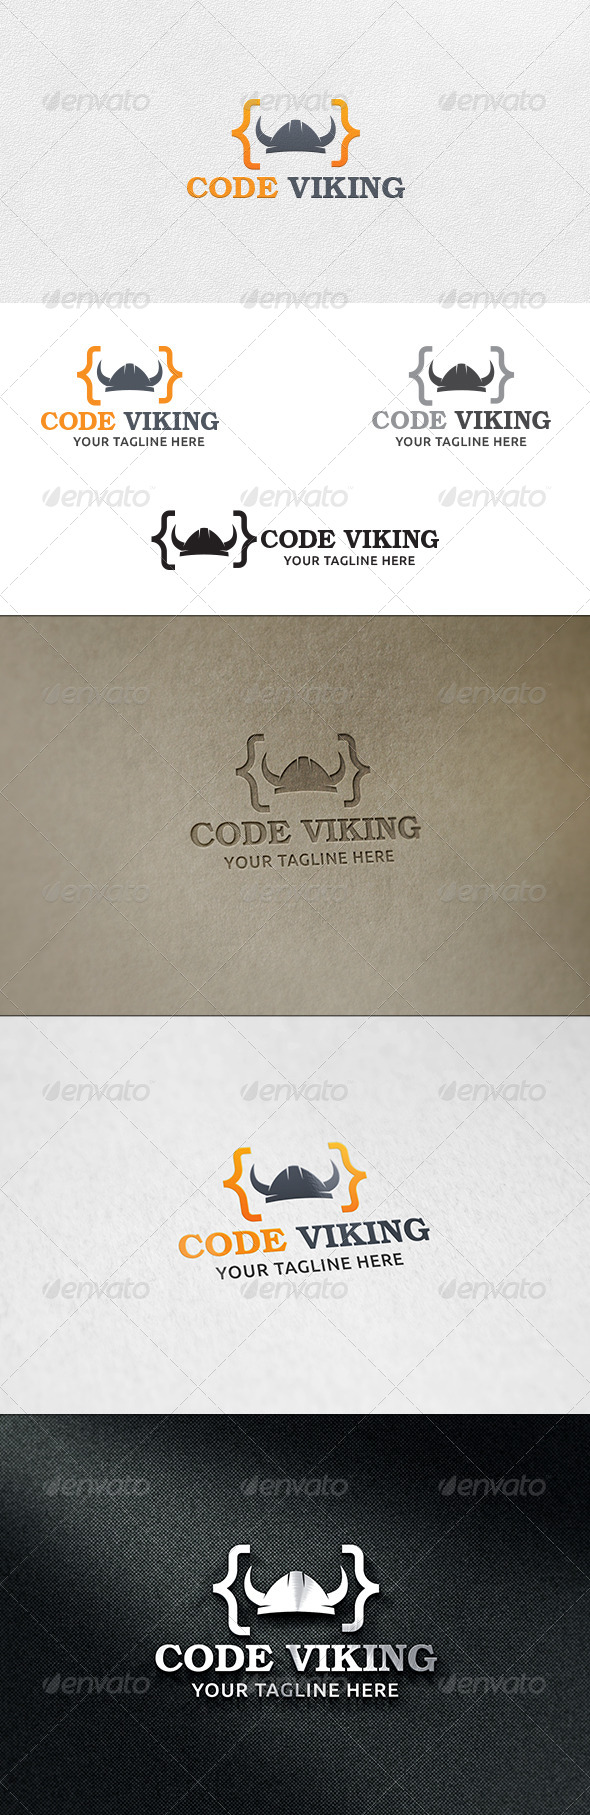 GraphicRiver Code Viking Logo Template 6592959